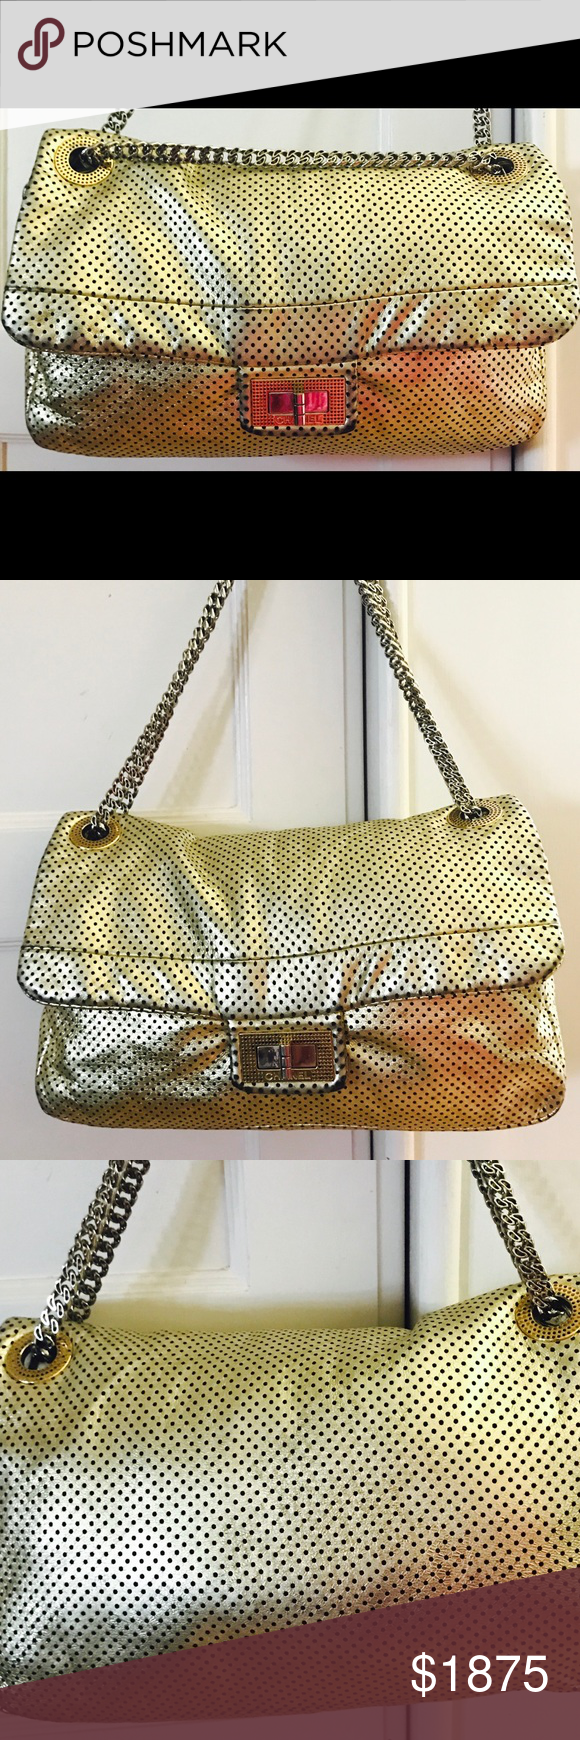 6e4637224d66 LAST DISC Chanel Gold Lambskin Flap Perforated Bag